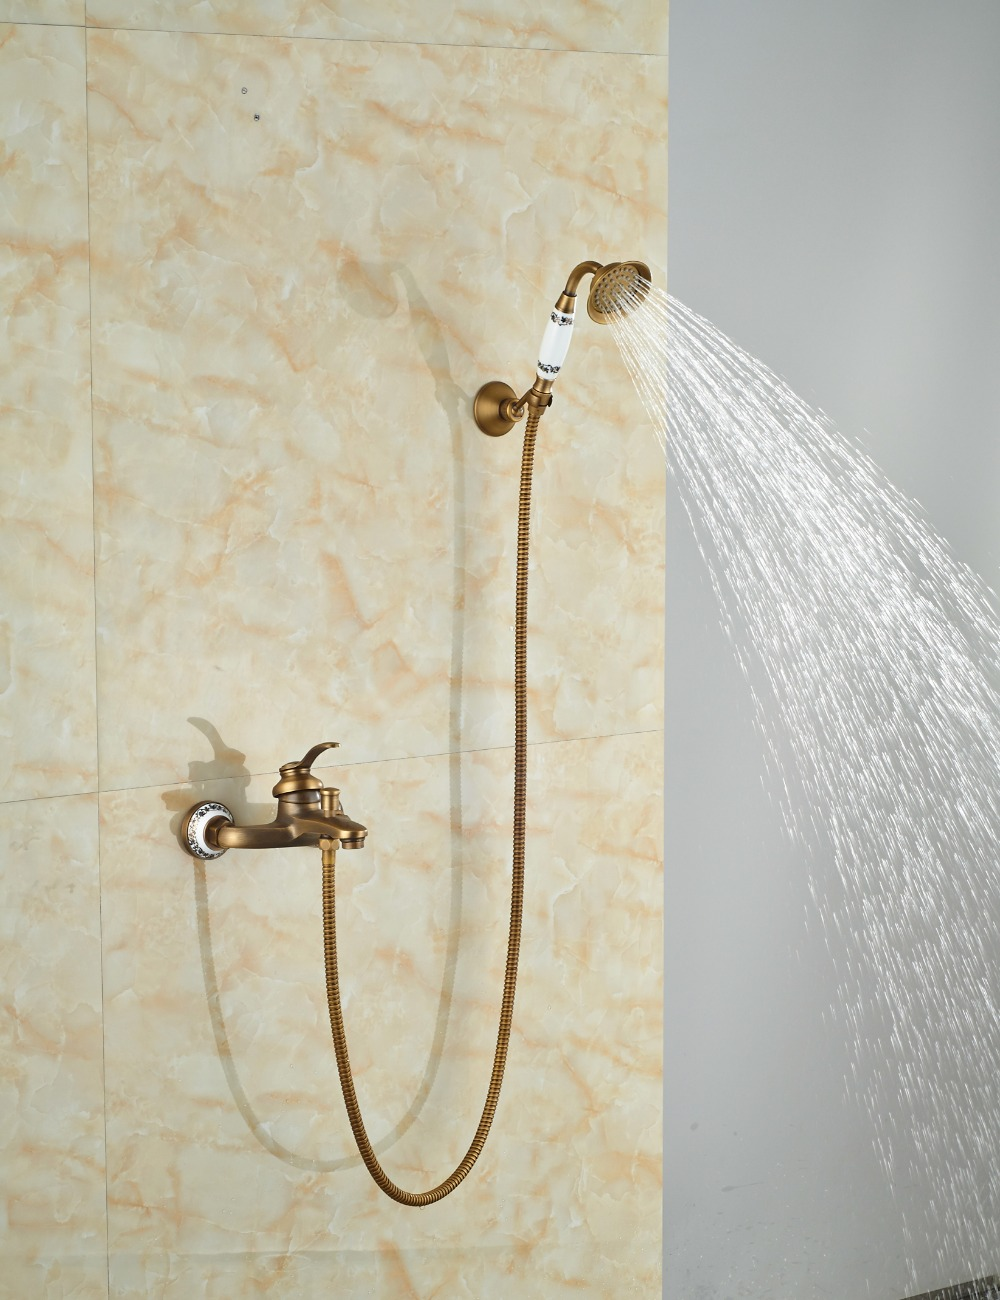 Multi-style Antique Brass Bathroom Tub Shower Faucet Wall Mounted Shower Mixer Tap W/ Hand Shower wall mount single handle bath shower faucet with handshower antique brass bathroom shower mixer tap